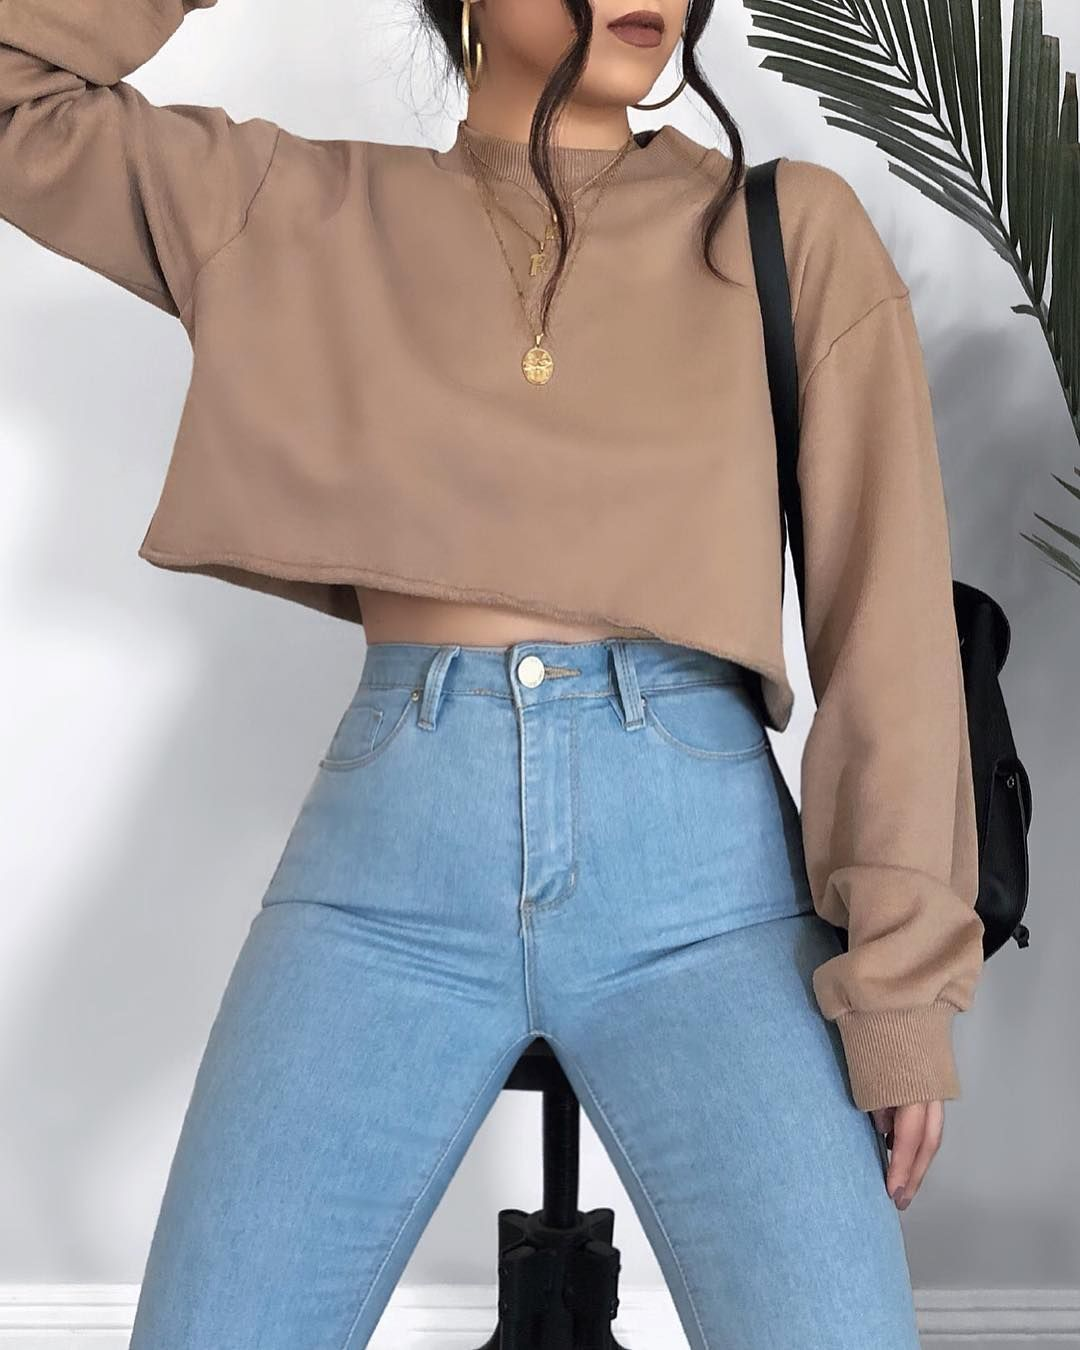 Jeans For Women Sweater Coat Best Festival Outfits Plus Size High Waisted Jeans Black Straight Leg Trousers Womens